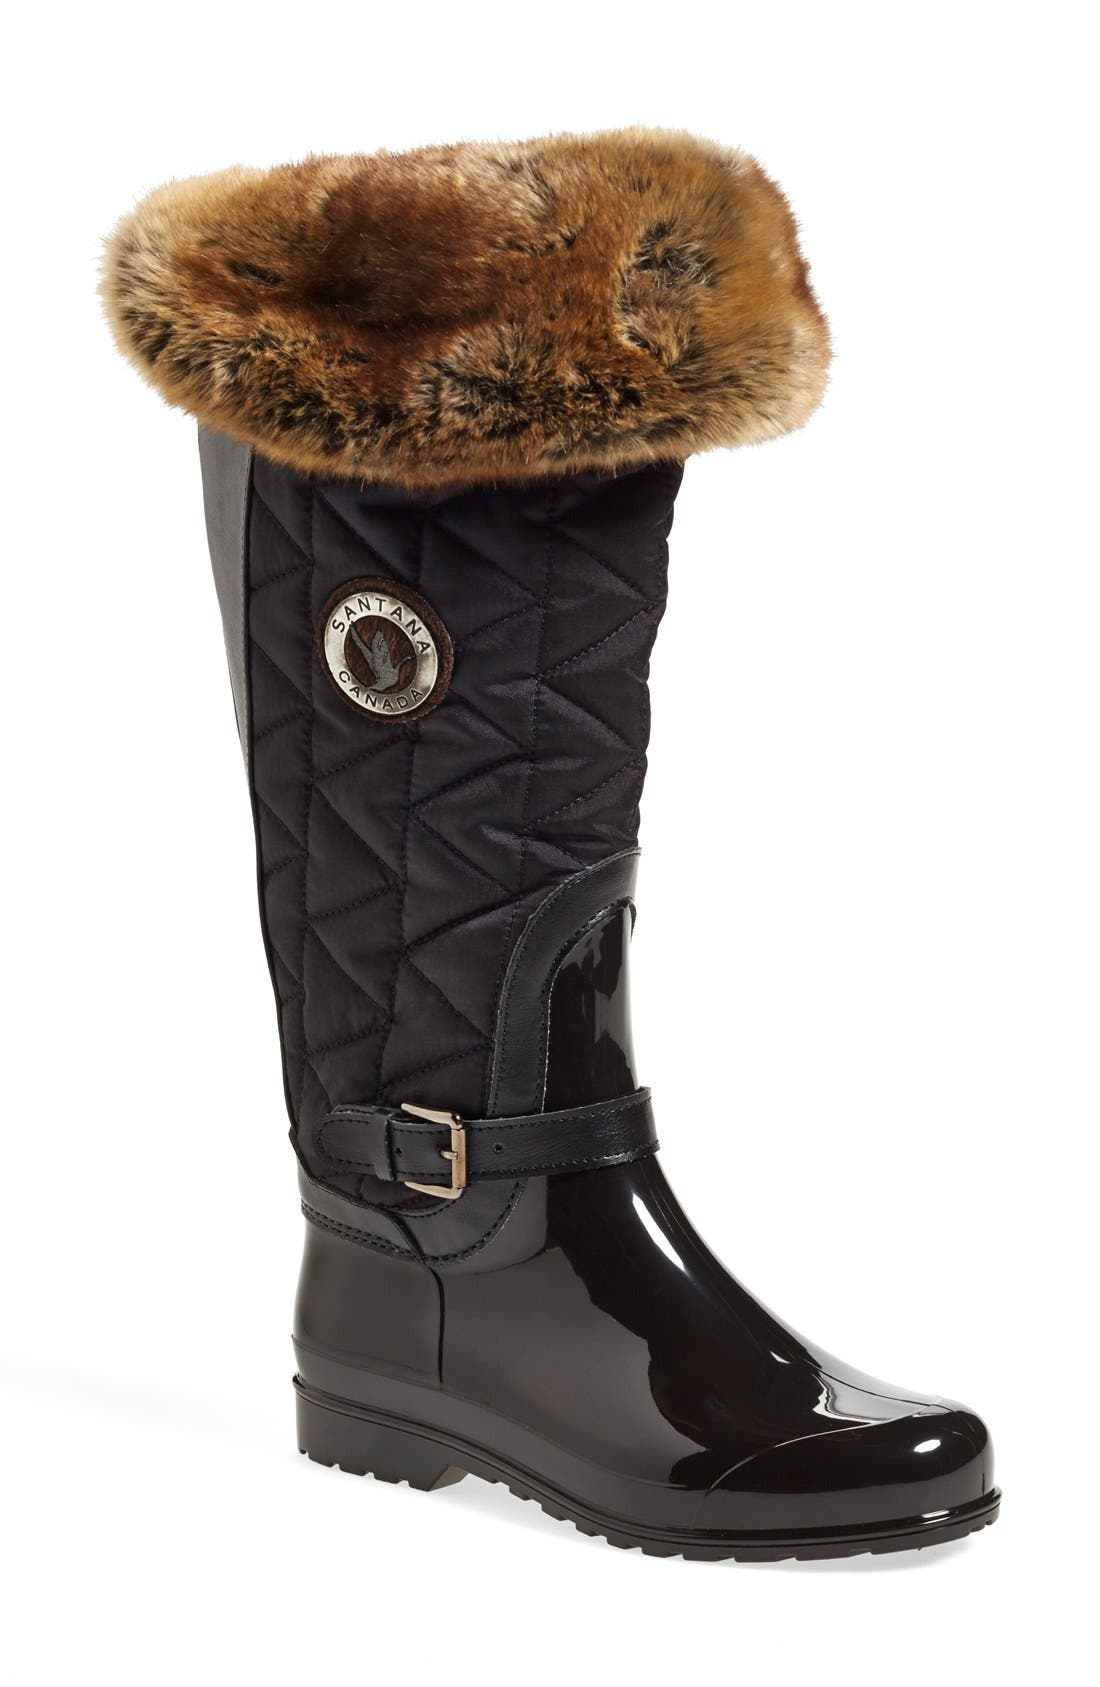 Main Image - Santana Canada 'Clarissa' Waterproof Rain Boot (Women)